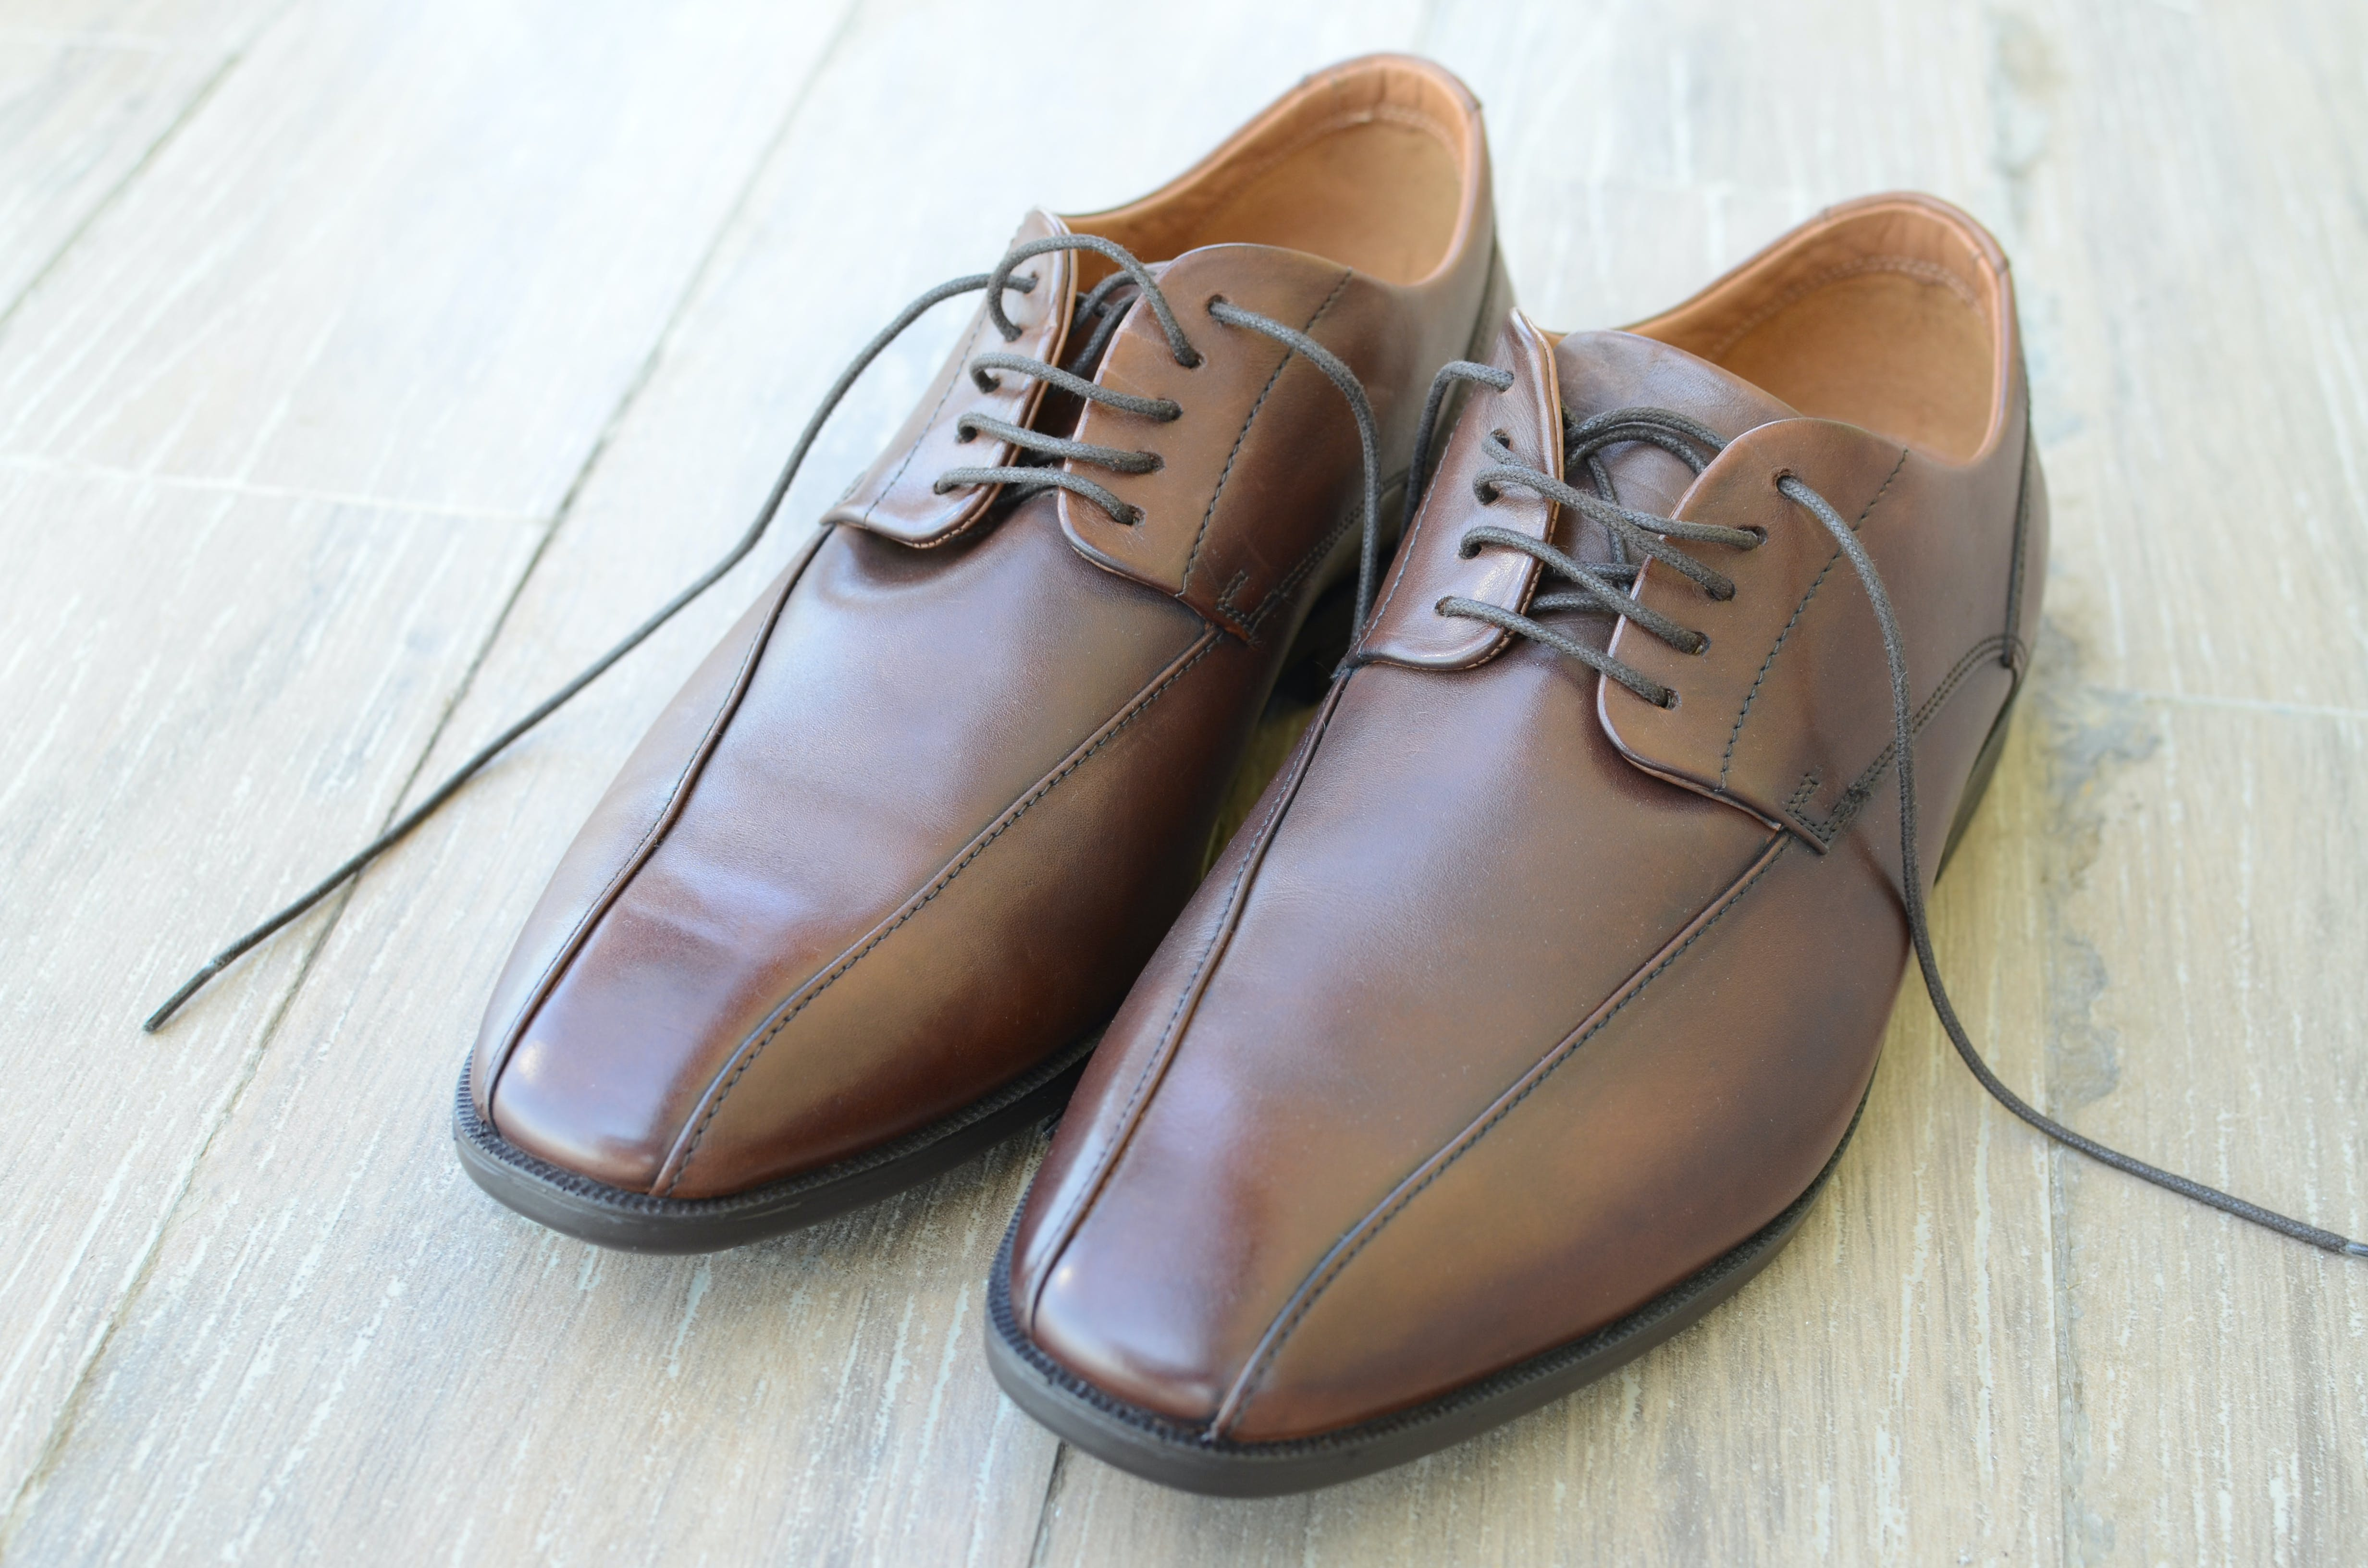 Pair of Brown Dress Shoes